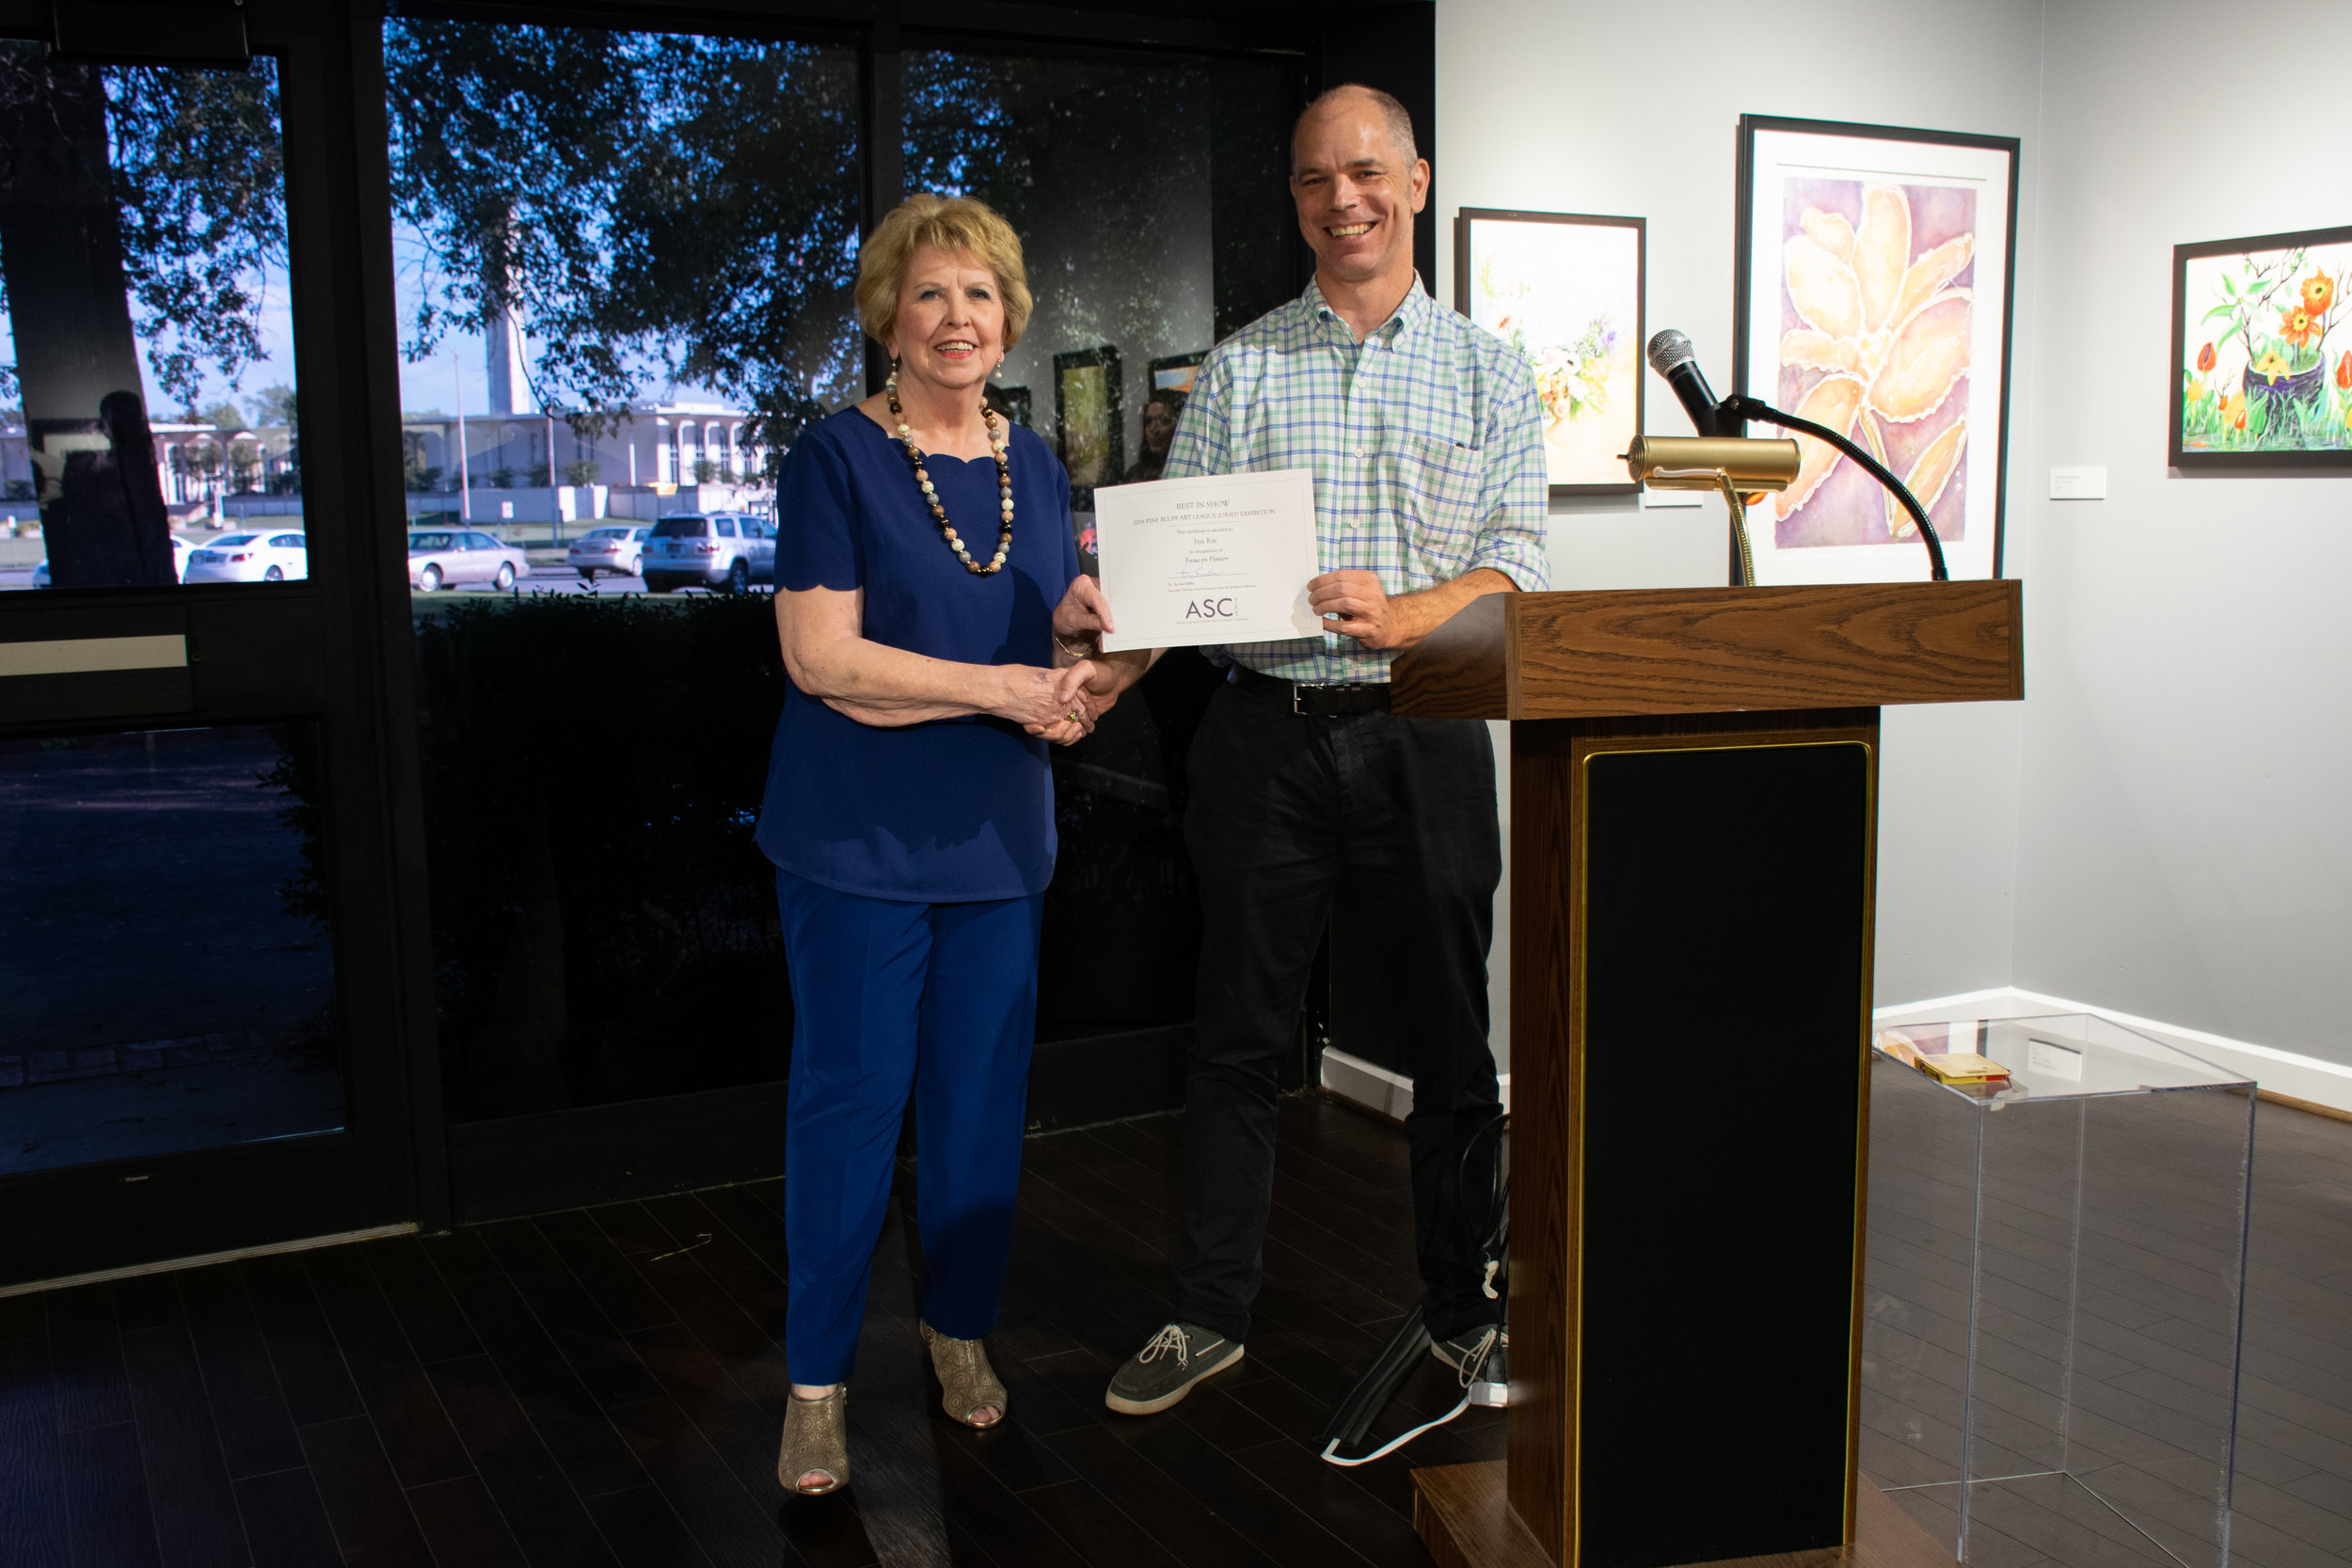 """Inis Ray won Best in Show for her oil and acrylic painting """"Focus on Flowers."""" Juror John Kushmaul announced the winners."""